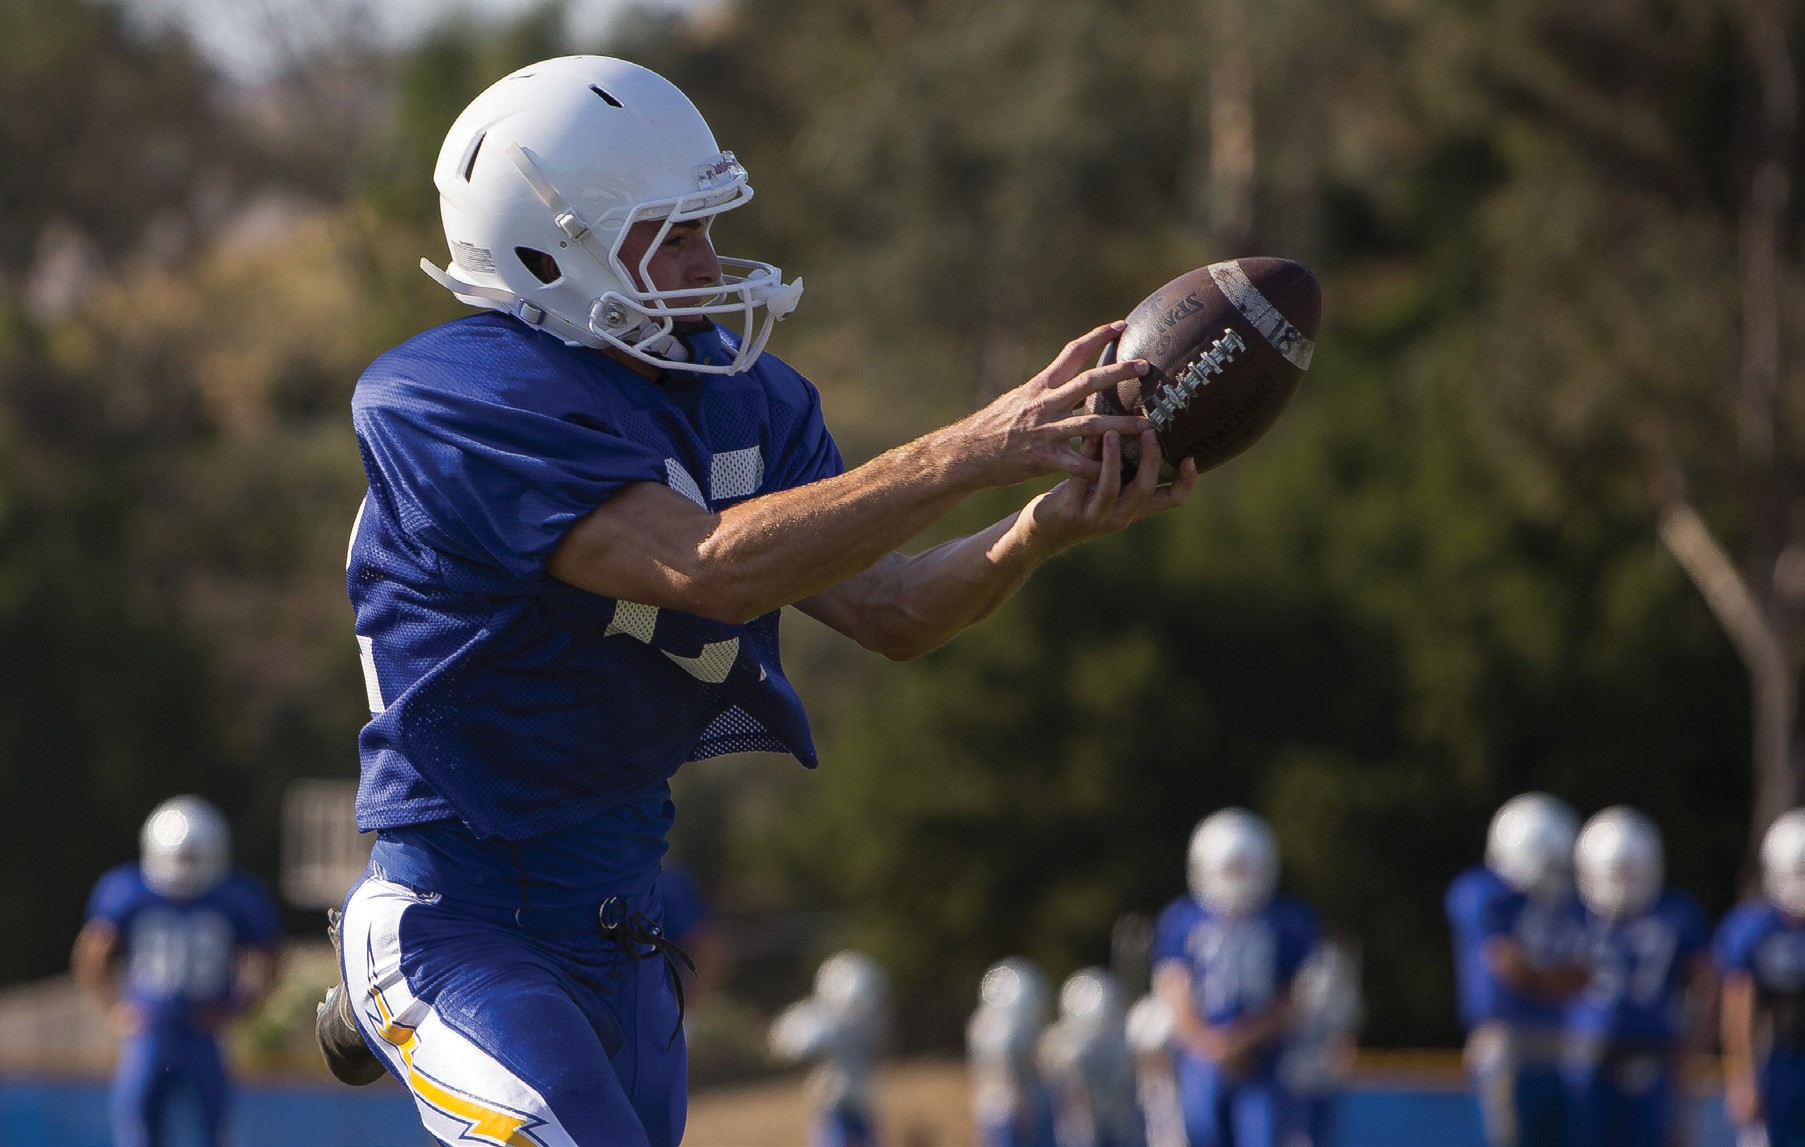 ALL HANDS ON DECK—Agoura's Nico Della Ripa makes a catch at practice. Della Ripa and the Chargers will try to bounce back from their first loss of the season. Agoura plays at El Camino Real on Friday night. BOBBY CURTIS/Acorn Newspapers